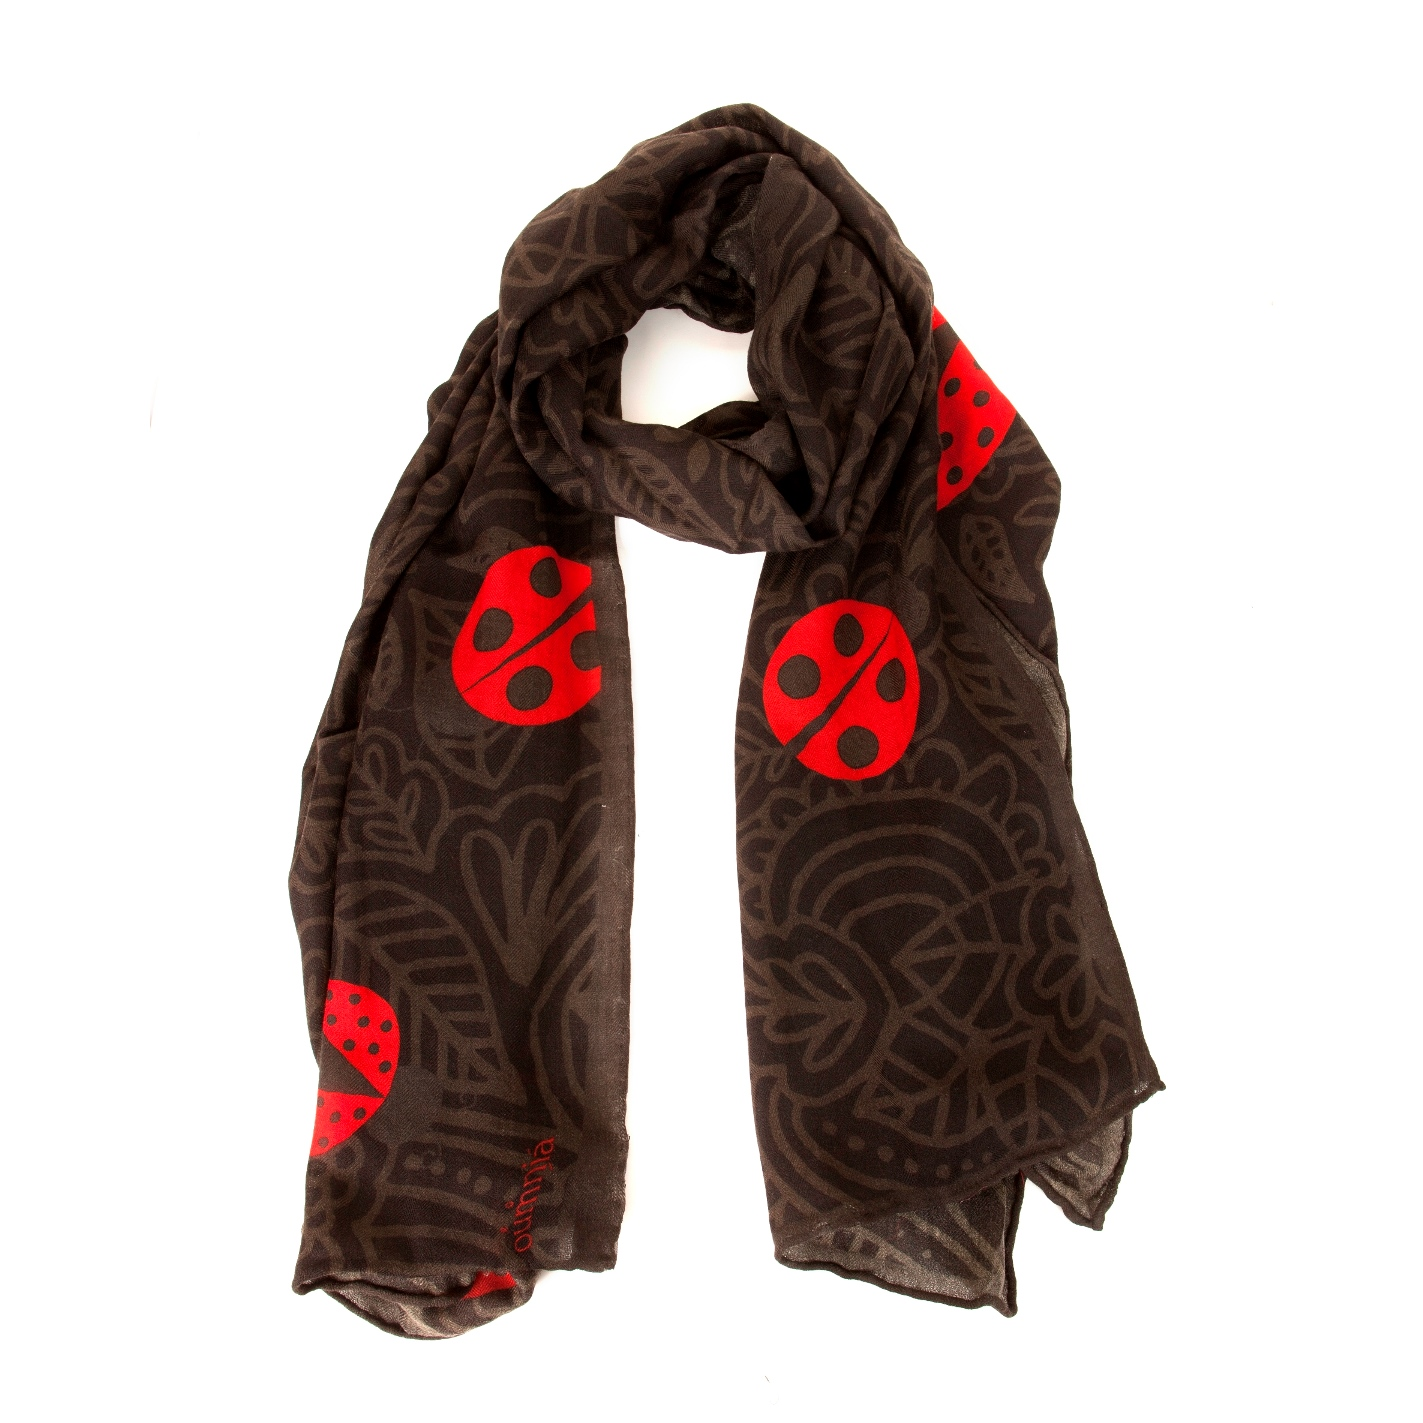 Ladybug Design Scarf on Soft Wool